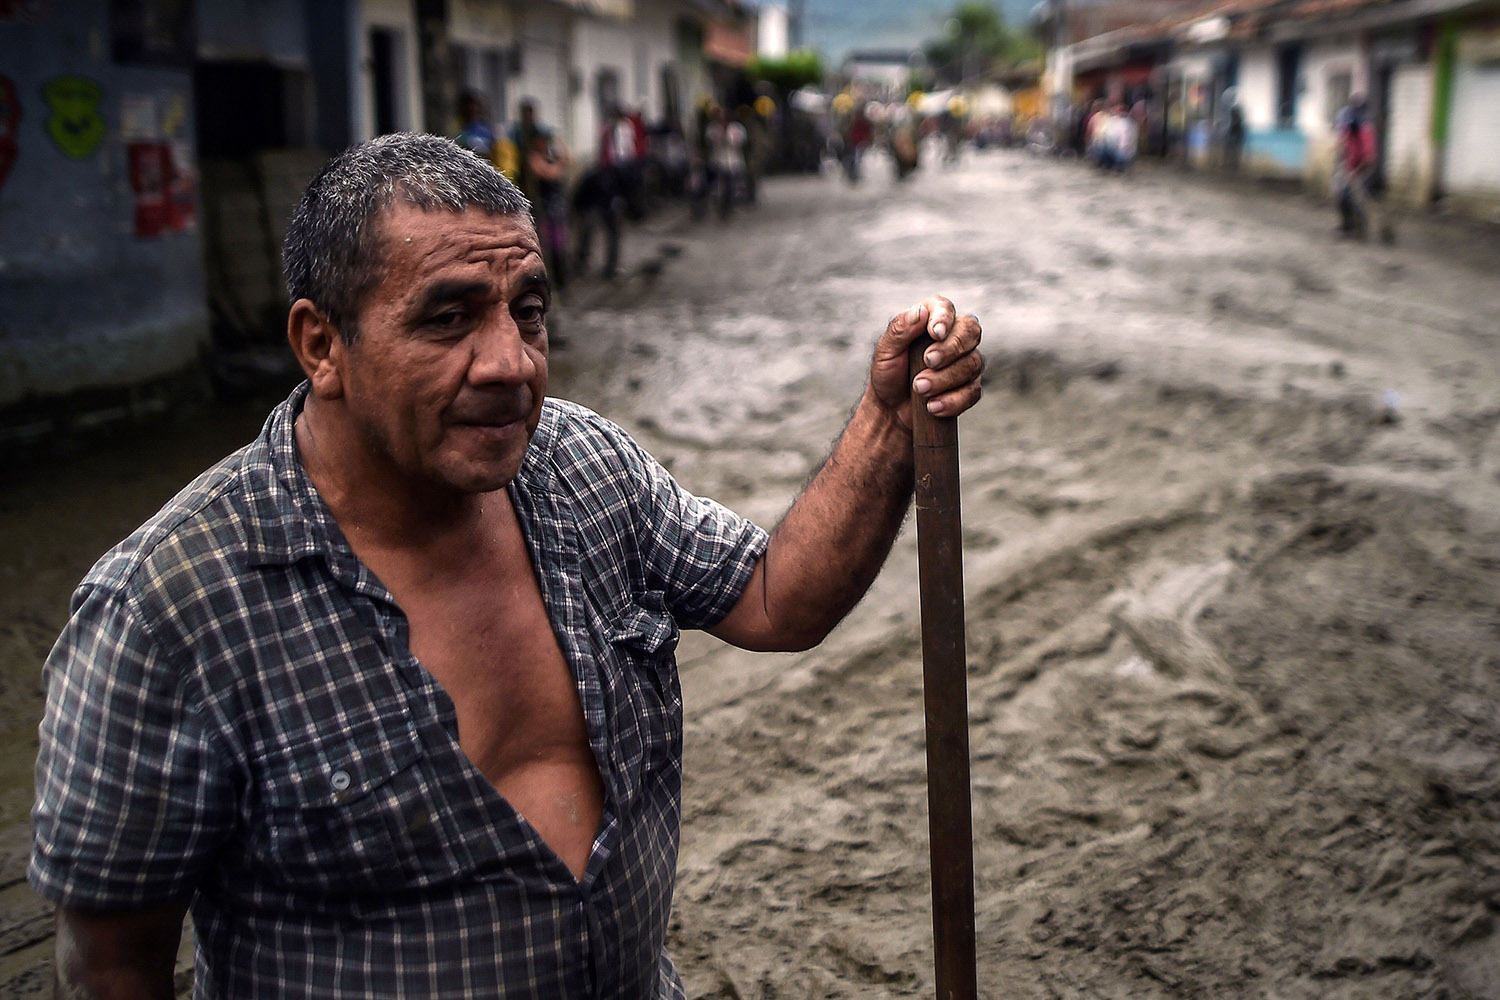 A man stands amid a muddy street after a mudslide due to heavy rains affected Corinto in Cauca department, southwest Colombia on Nov. 8. Luis Robayo/AFP/Getty Images